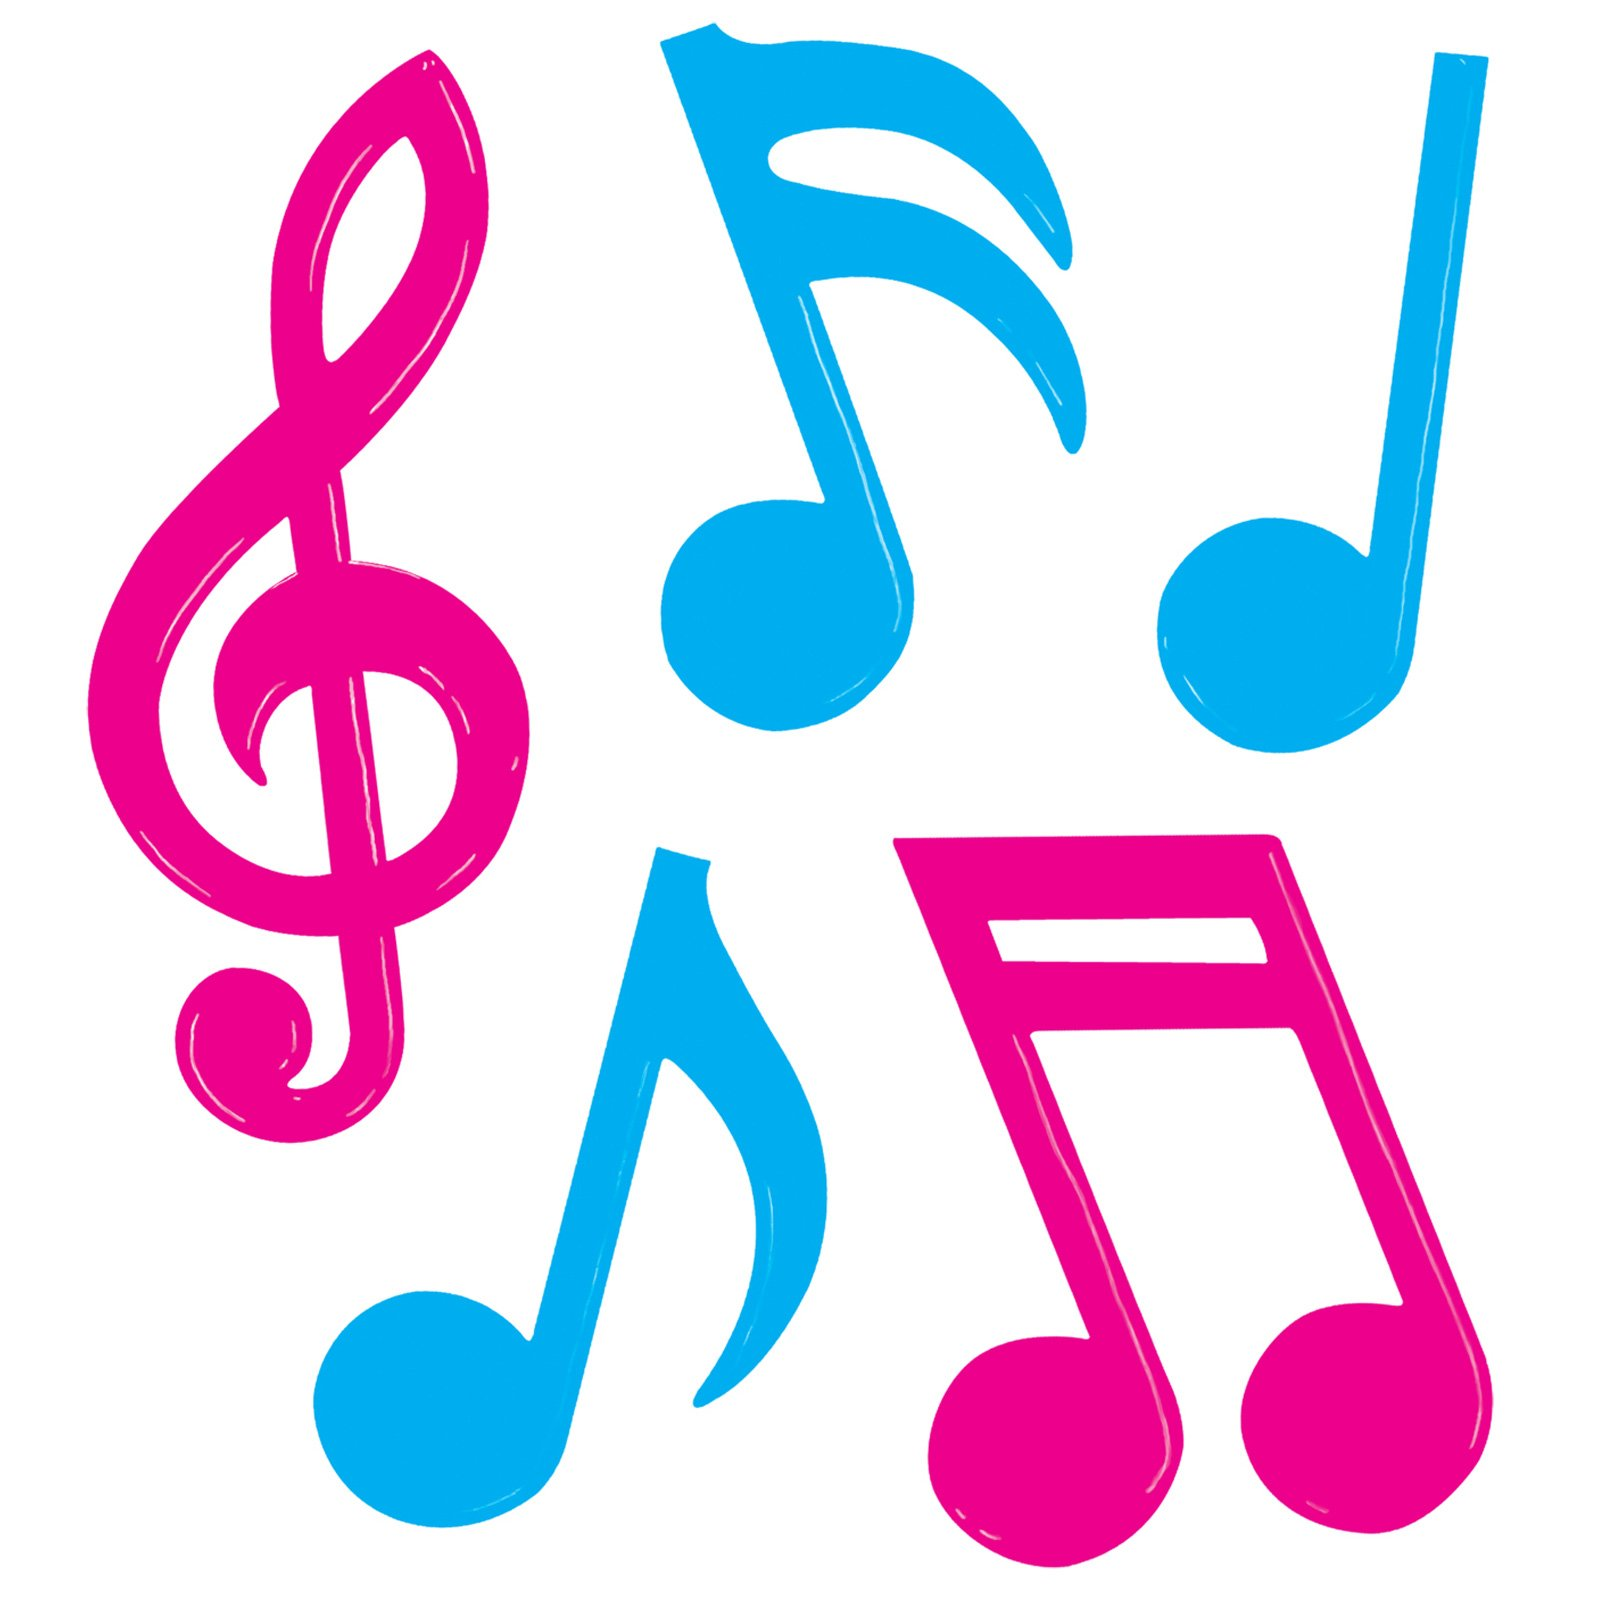 Music Notes clipart muisic Clipart 110 #clipart notes Color